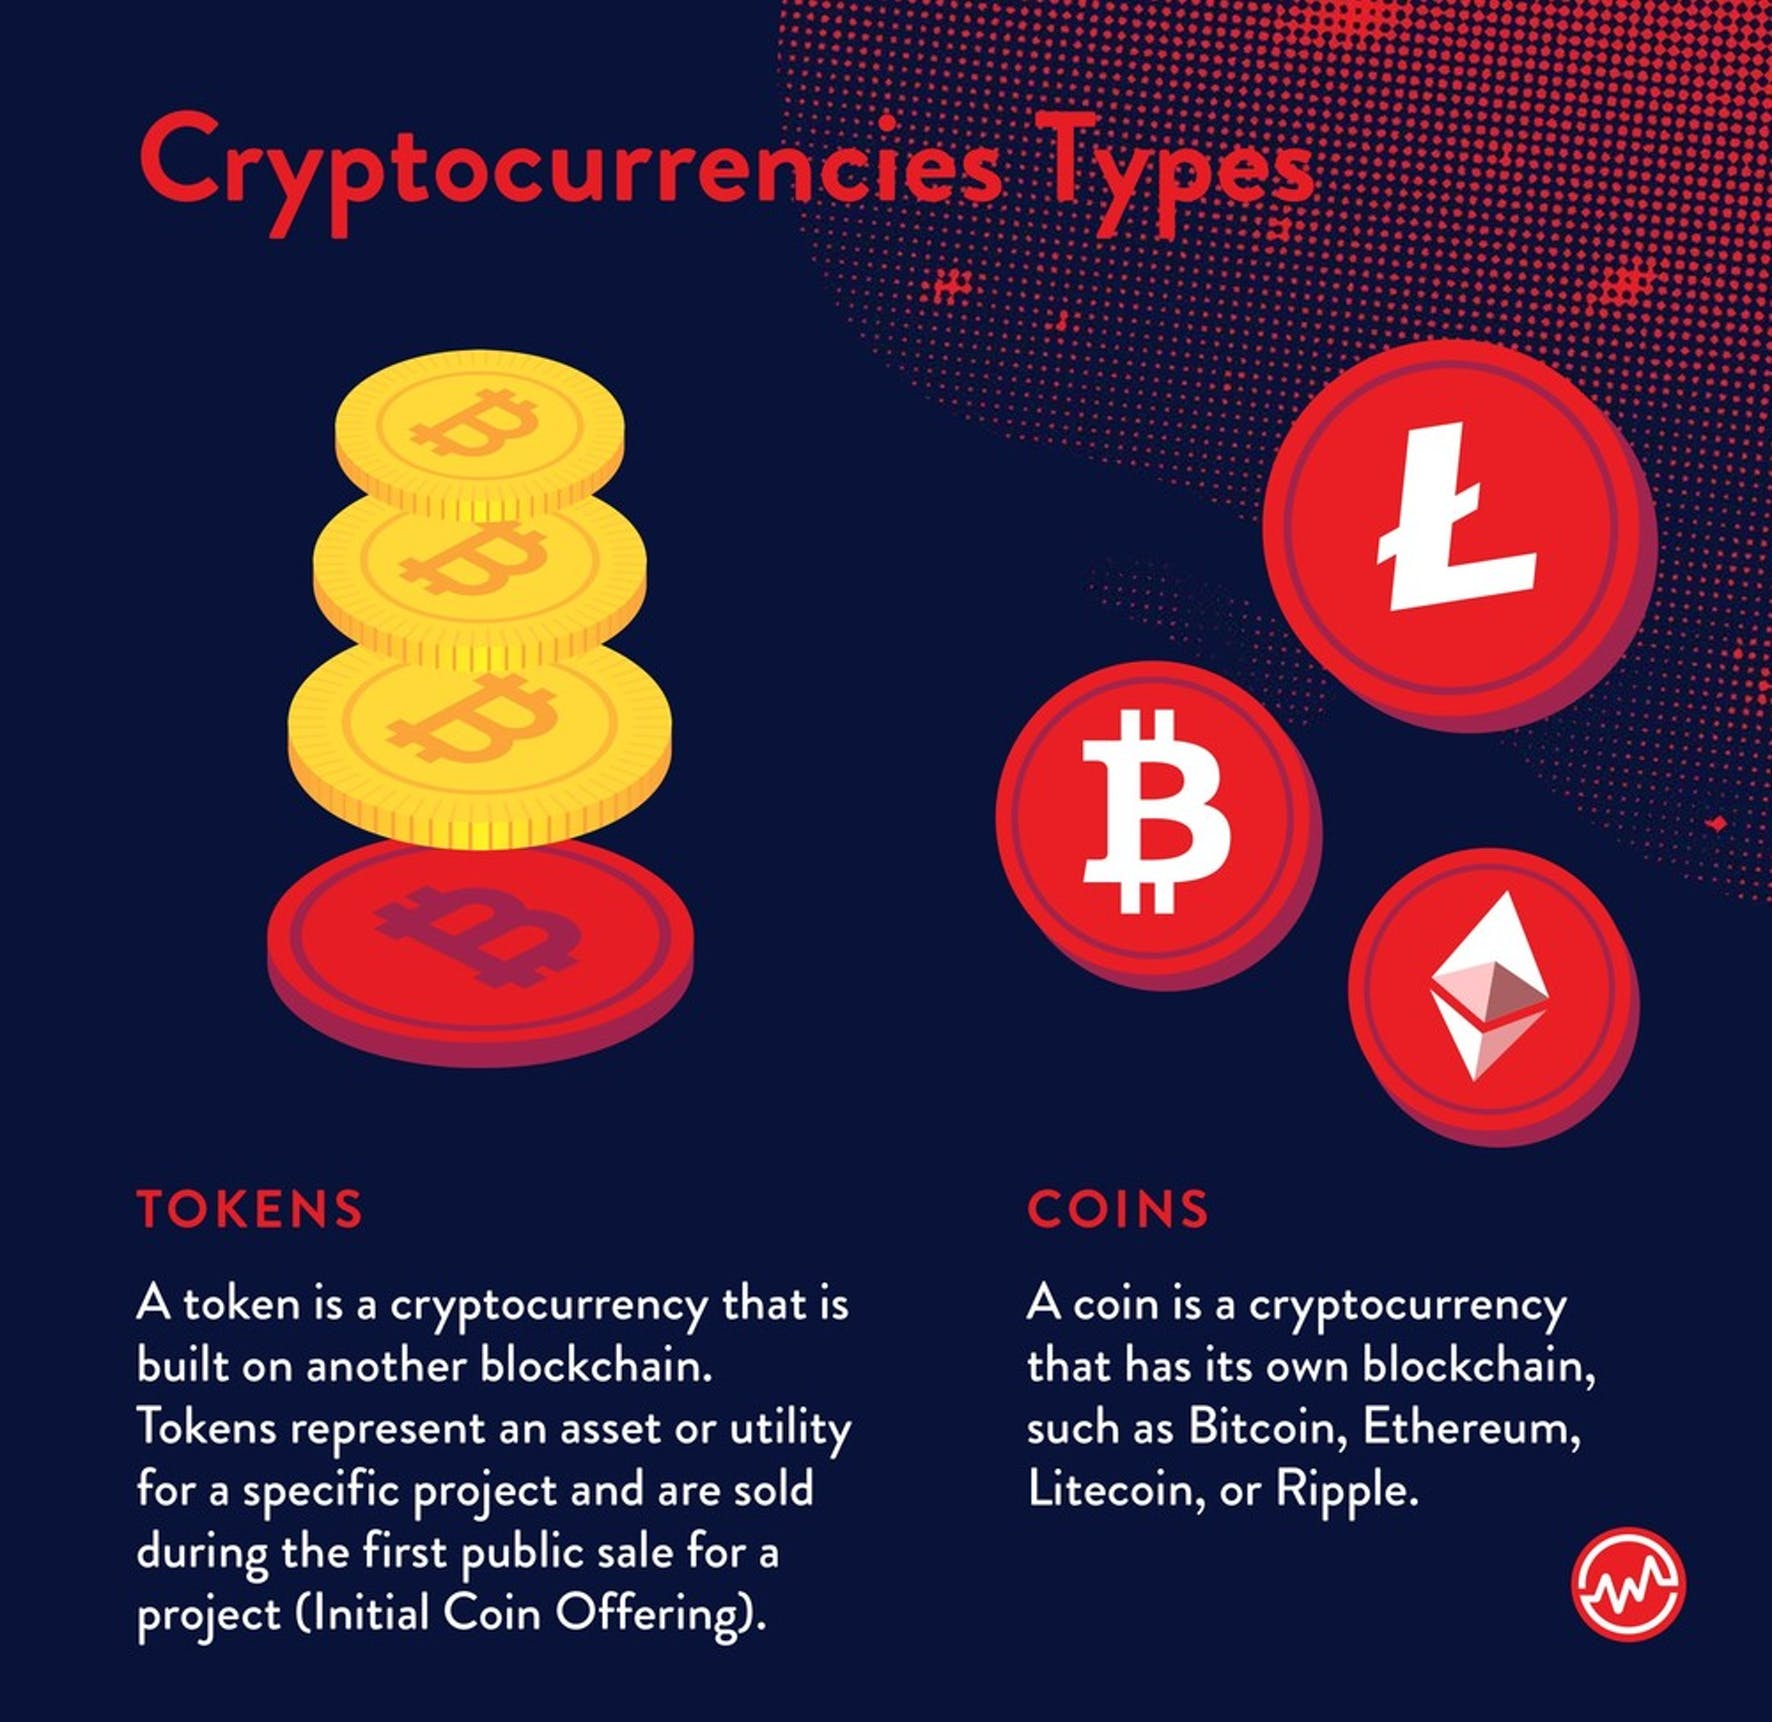 Types of cryptocurrencies: tokens and coins